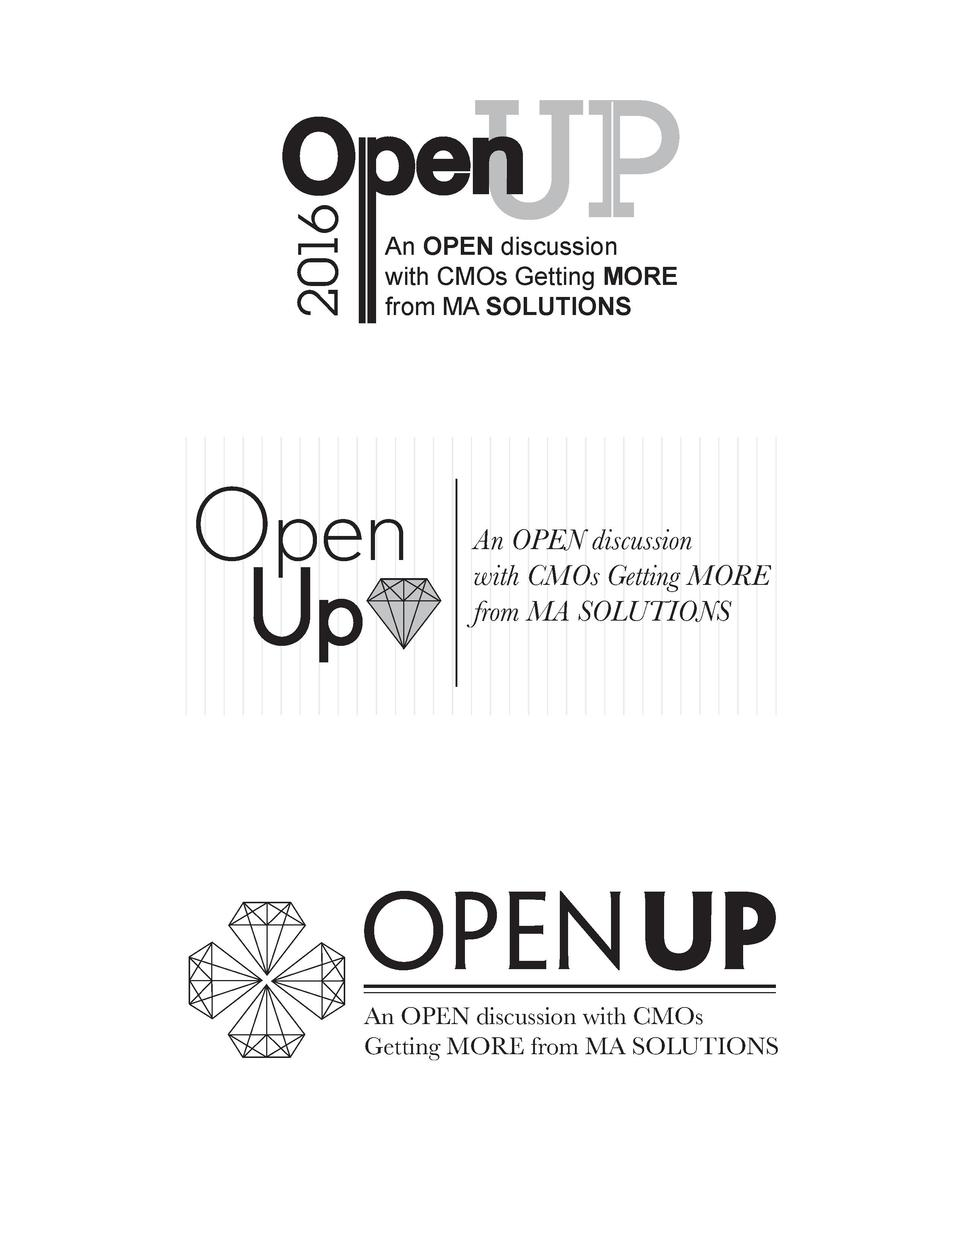 UP  2016  Open  An OPEN discussion with CMOs Getting MORE from MA SOLUTIONS  Open Up  An OPEN discussion with CMOs Getting...